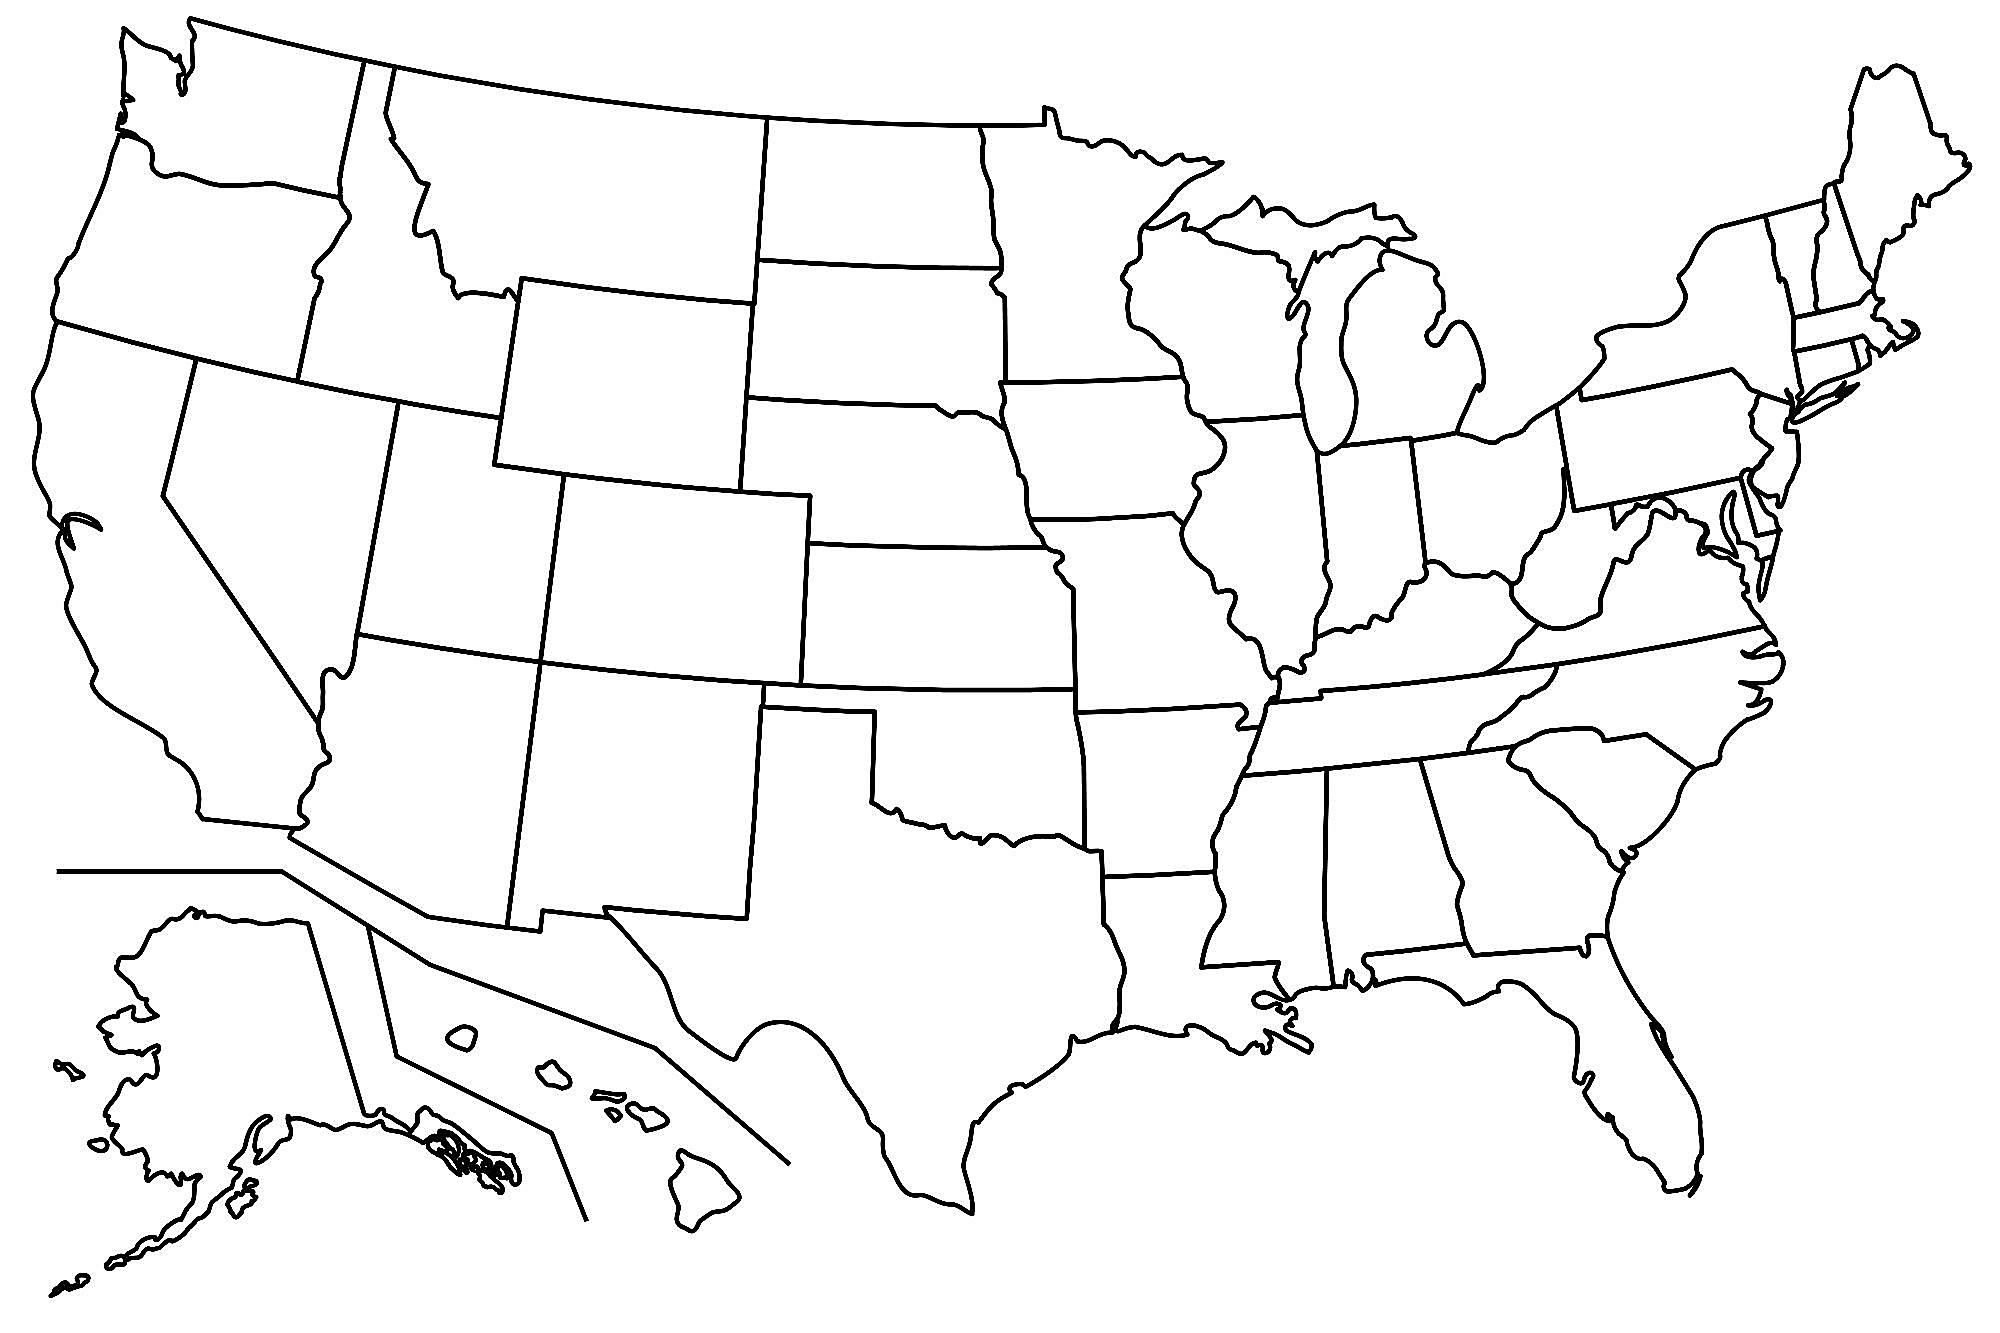 BLANK UNITED STATES MAP GLOSSY POSTER PICTURE PHOTO america usa cool